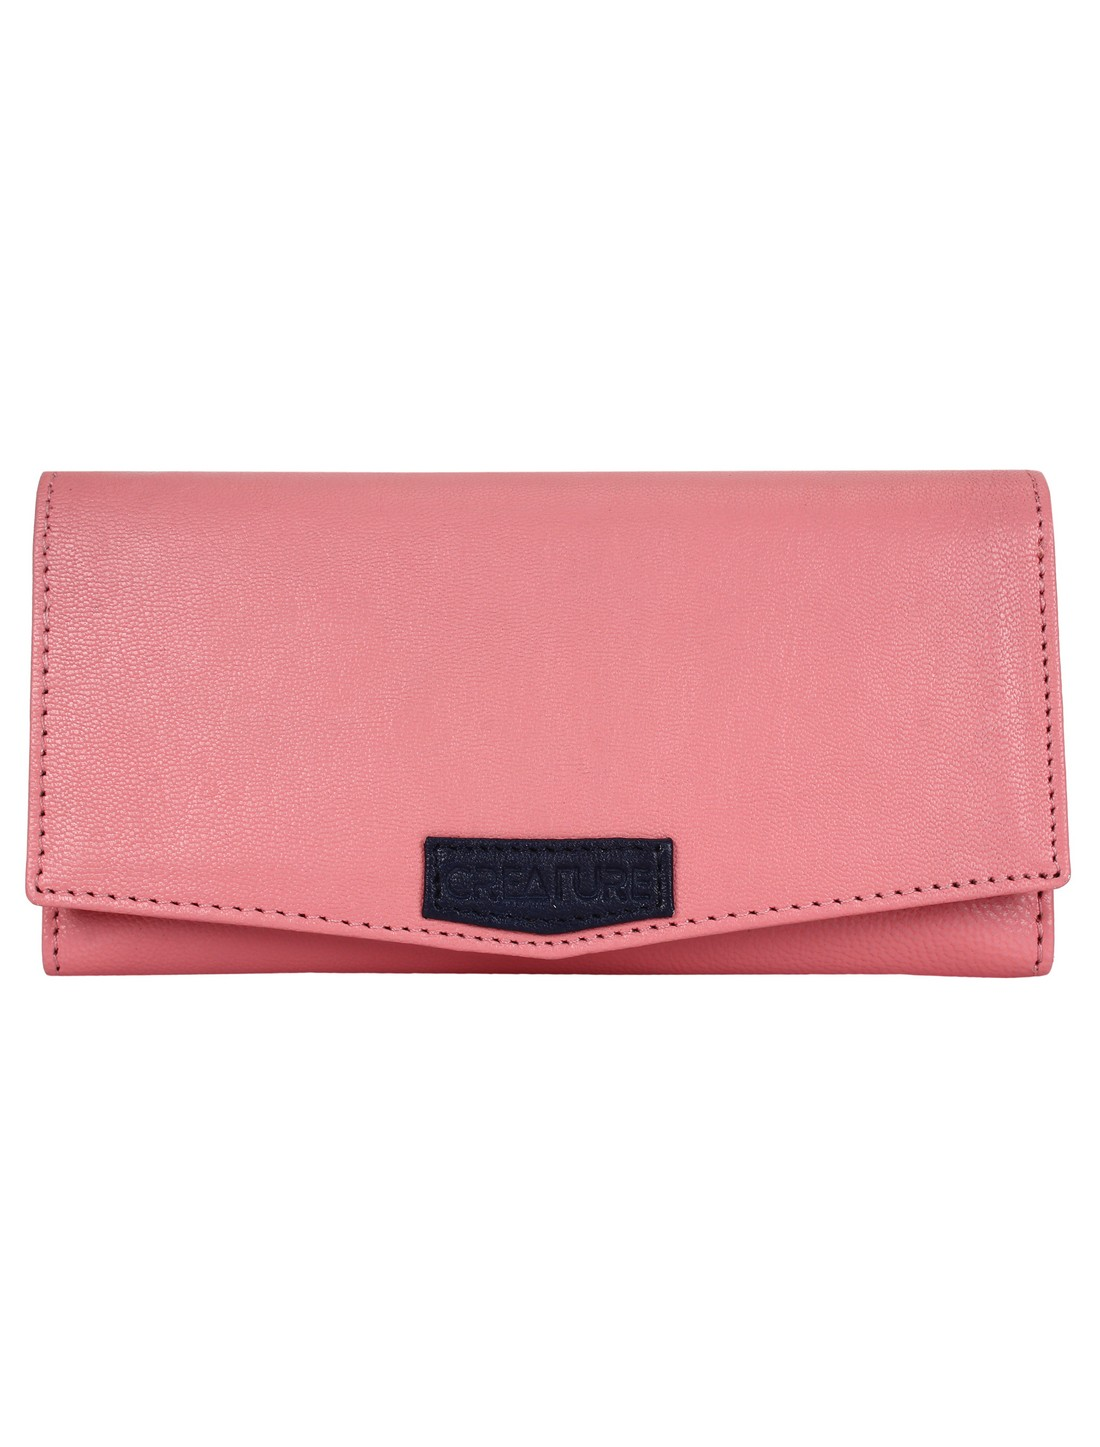 CREATURE   CREATURE Pink Stylish Genuine Leather Clutch for Women